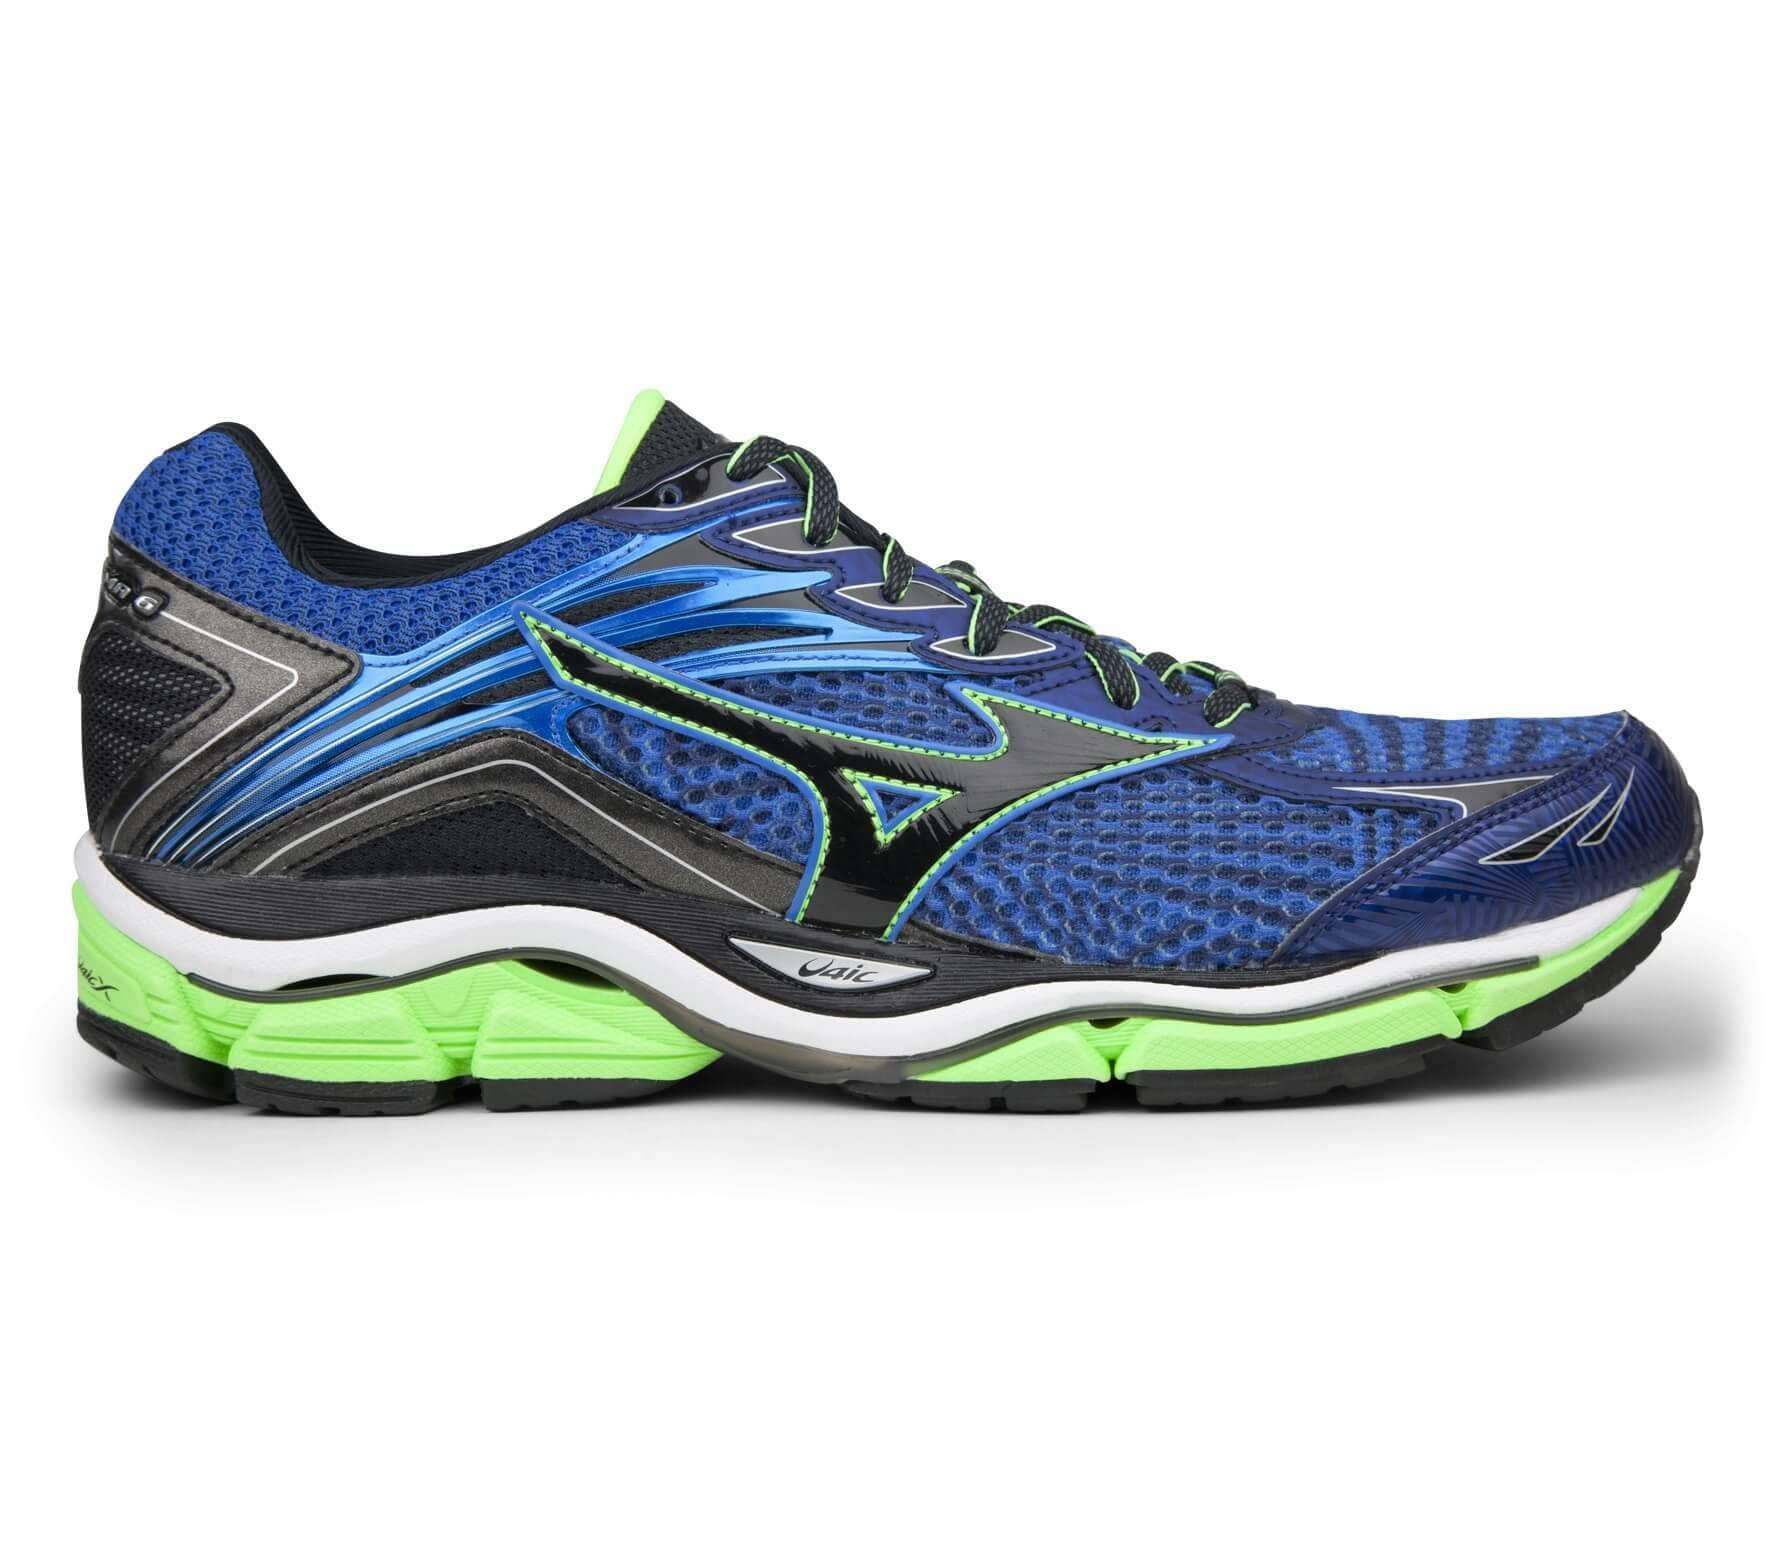 MIZUNO WAVE ENIGMA 6 FOR MEN'S Running shoes Shoes Man Our